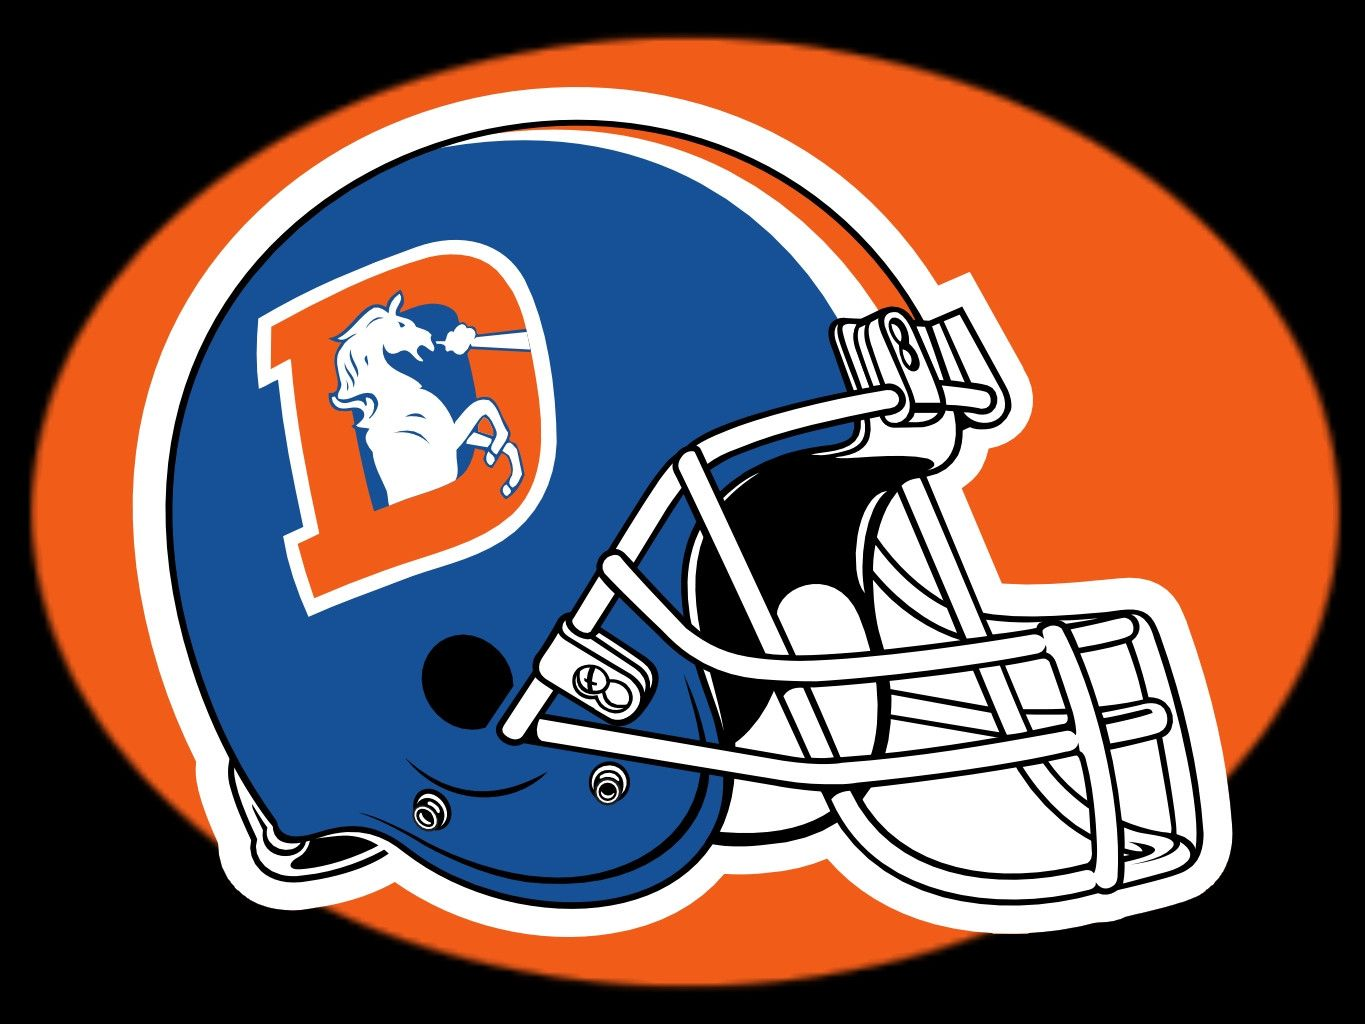 Denver broncos wallpapers broncos wallpapers hd 19201200 denver denver broncos wallpapers broncos wallpapers hd 19201200 denver broncos wallpaper 49 wallpapers voltagebd Image collections